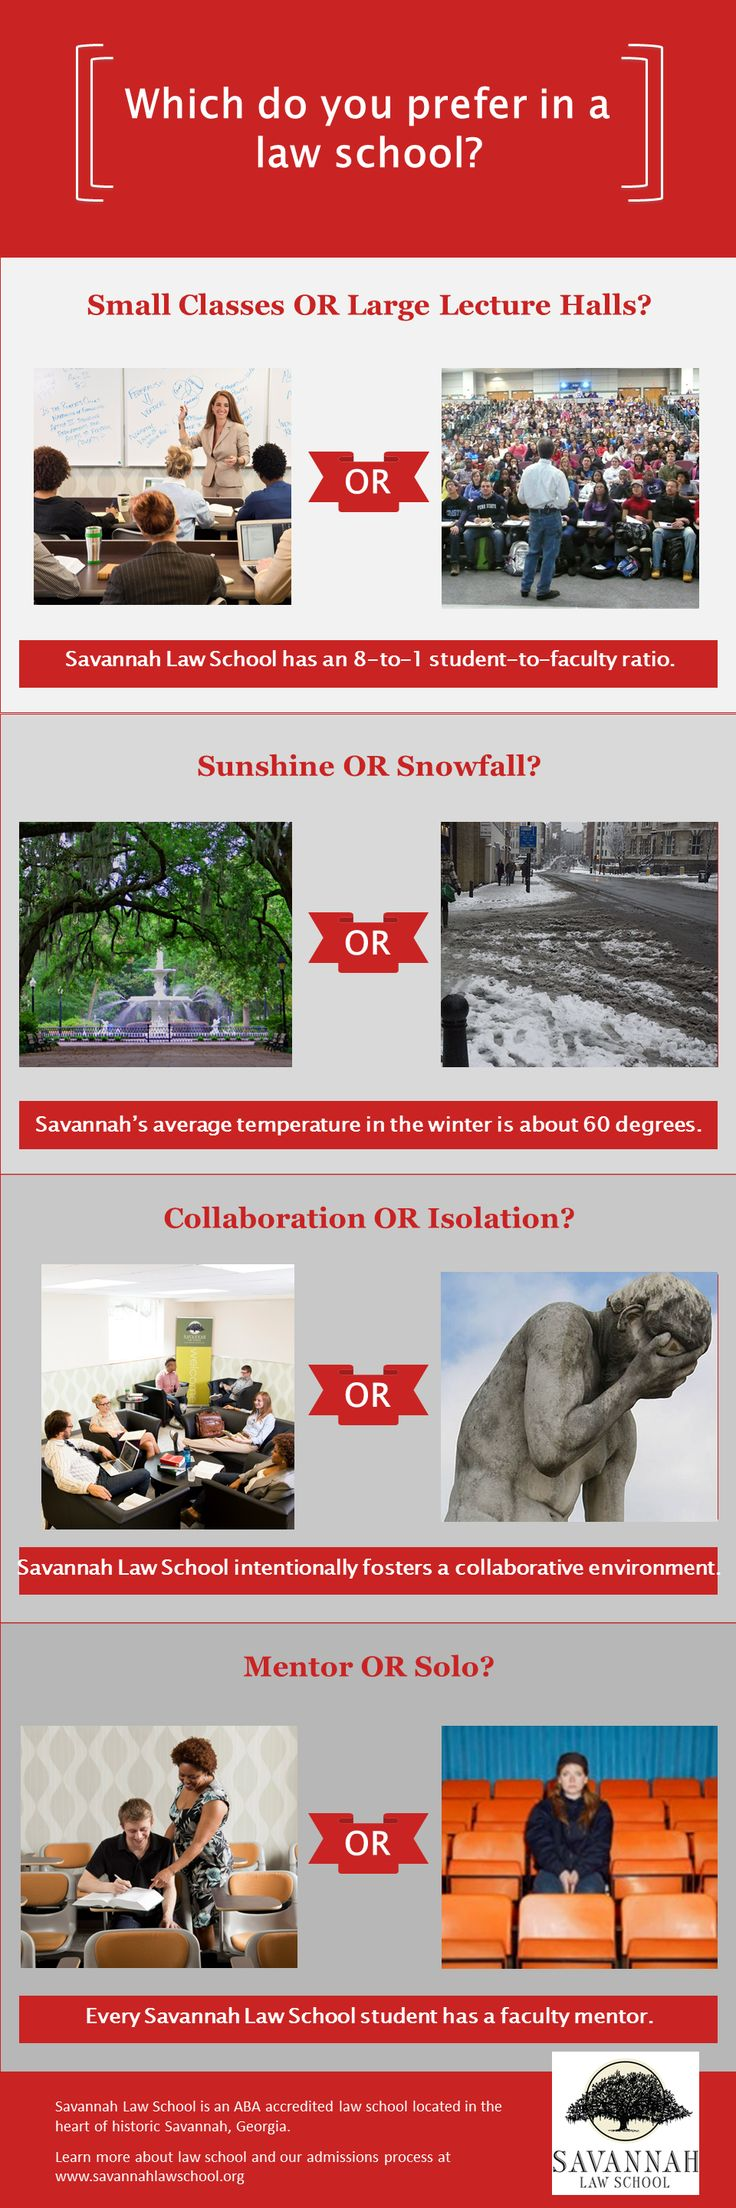 What do you prefer in a law school?